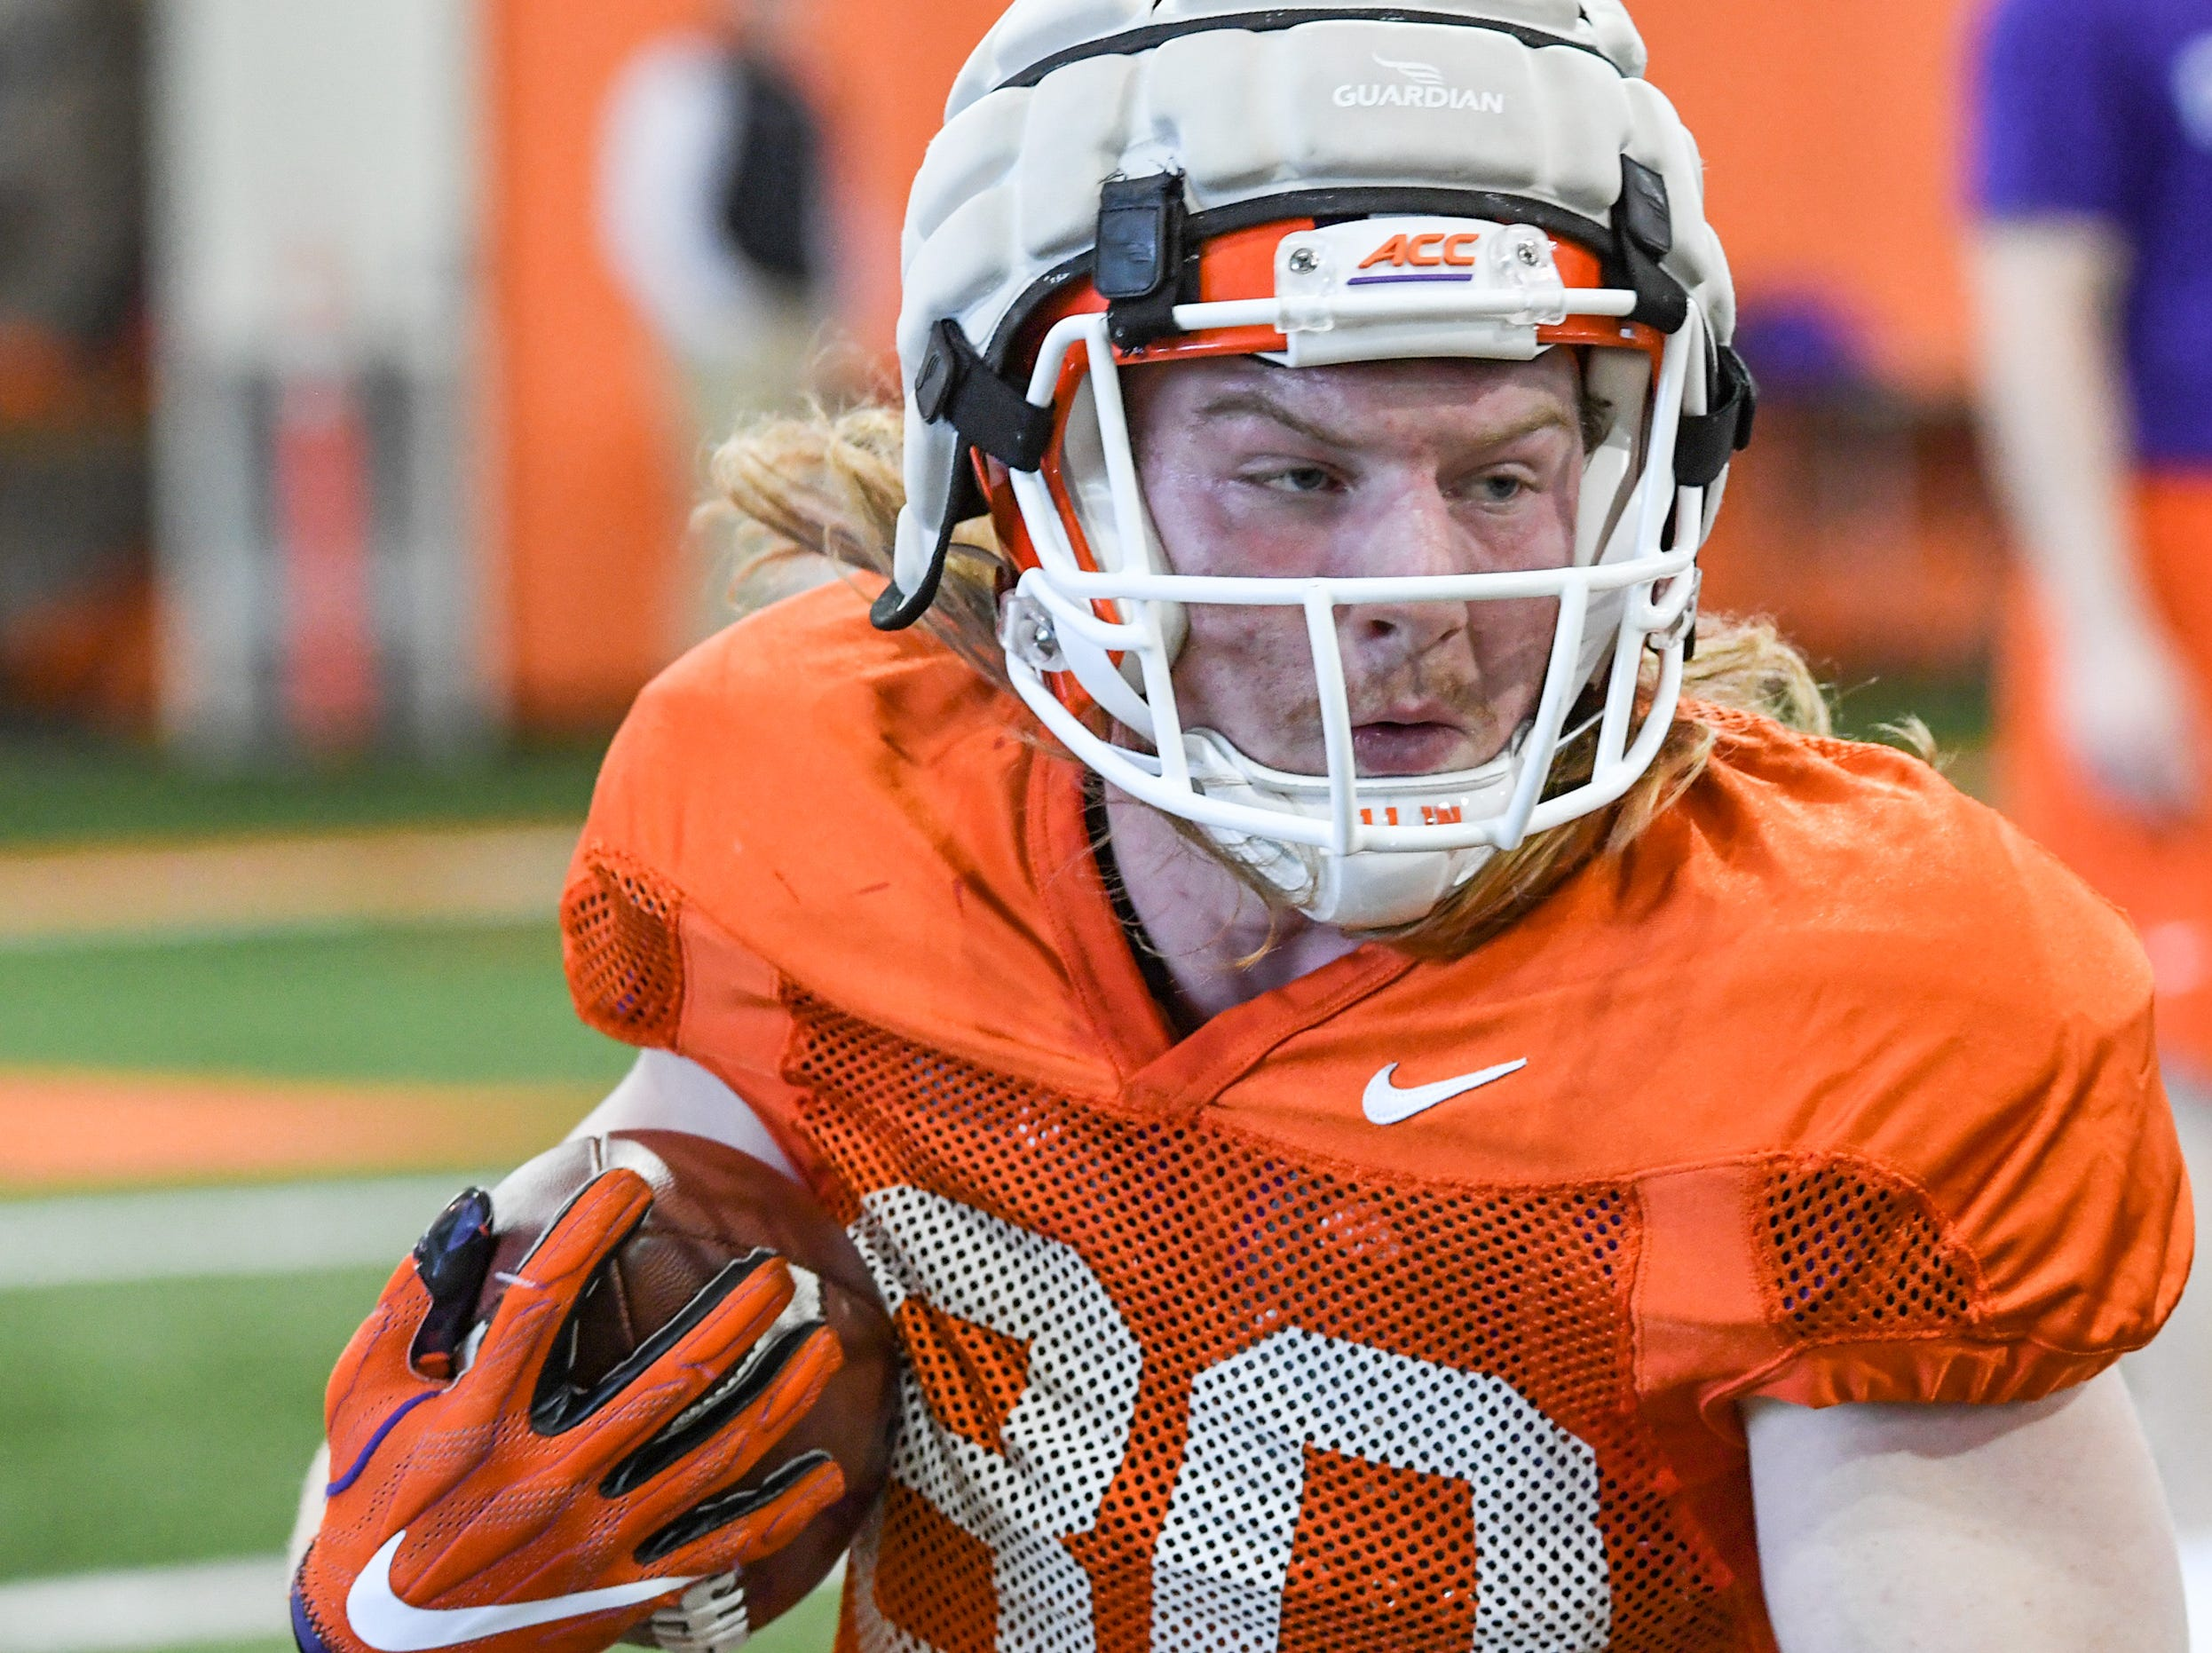 Clemson tight end Luke Price(80) runs after a catch during practice at the Poe Indoor Facility in Clemson Monday.